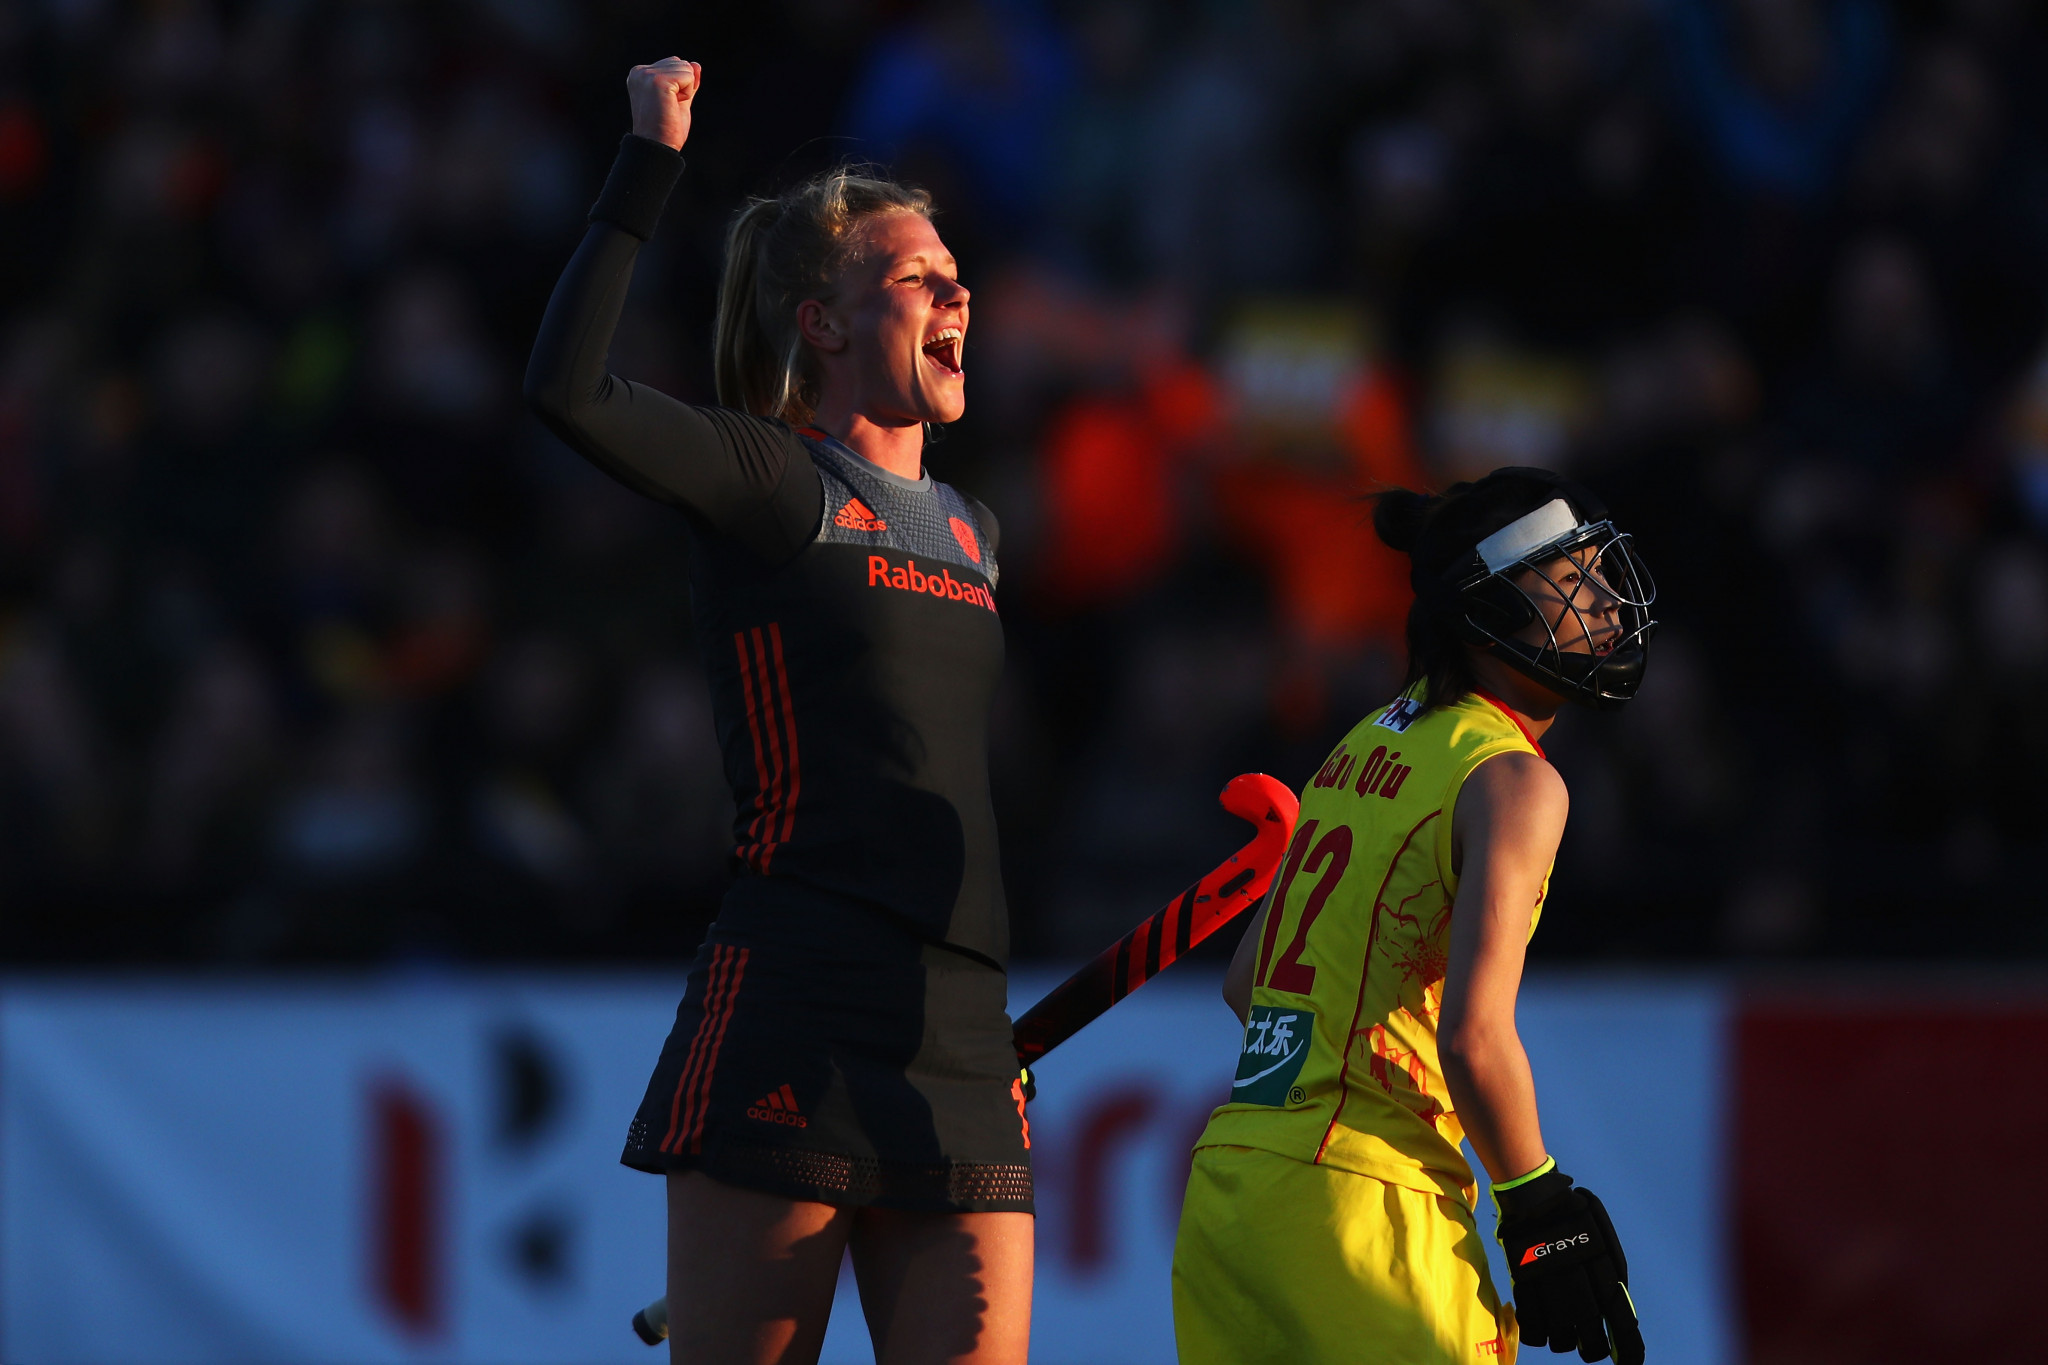 Caia van Maasakker celebrates scoring one of her three goals against China ©Getty Images